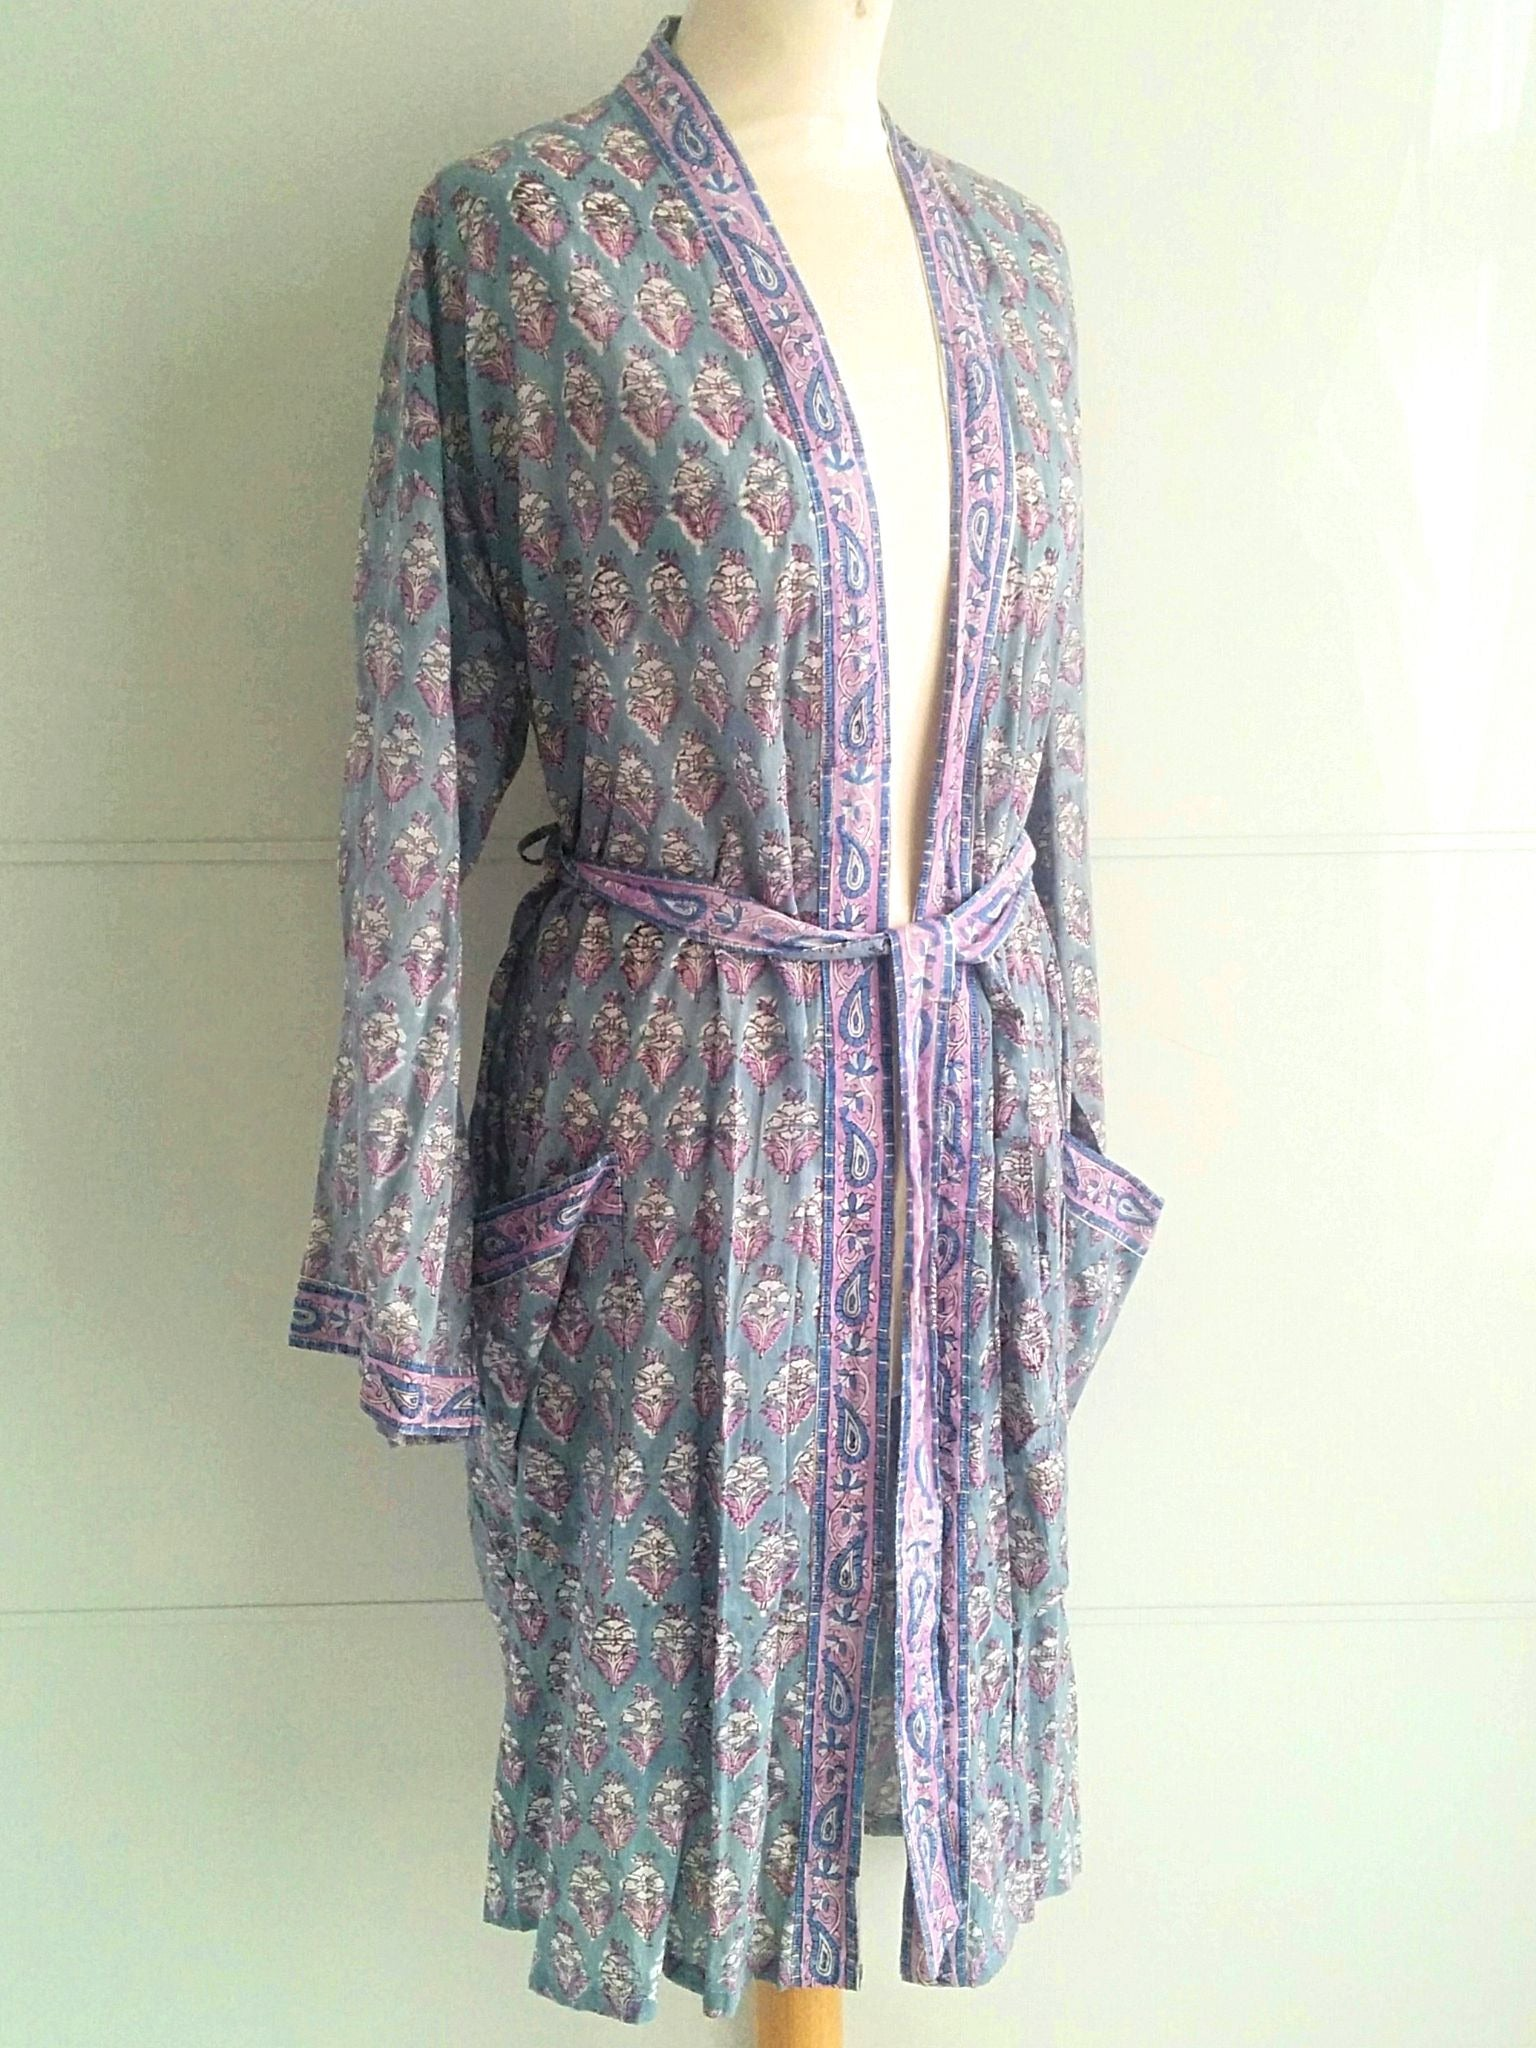 Kimono Robe - Floral Block Print - Jasmine - An Indian Summer